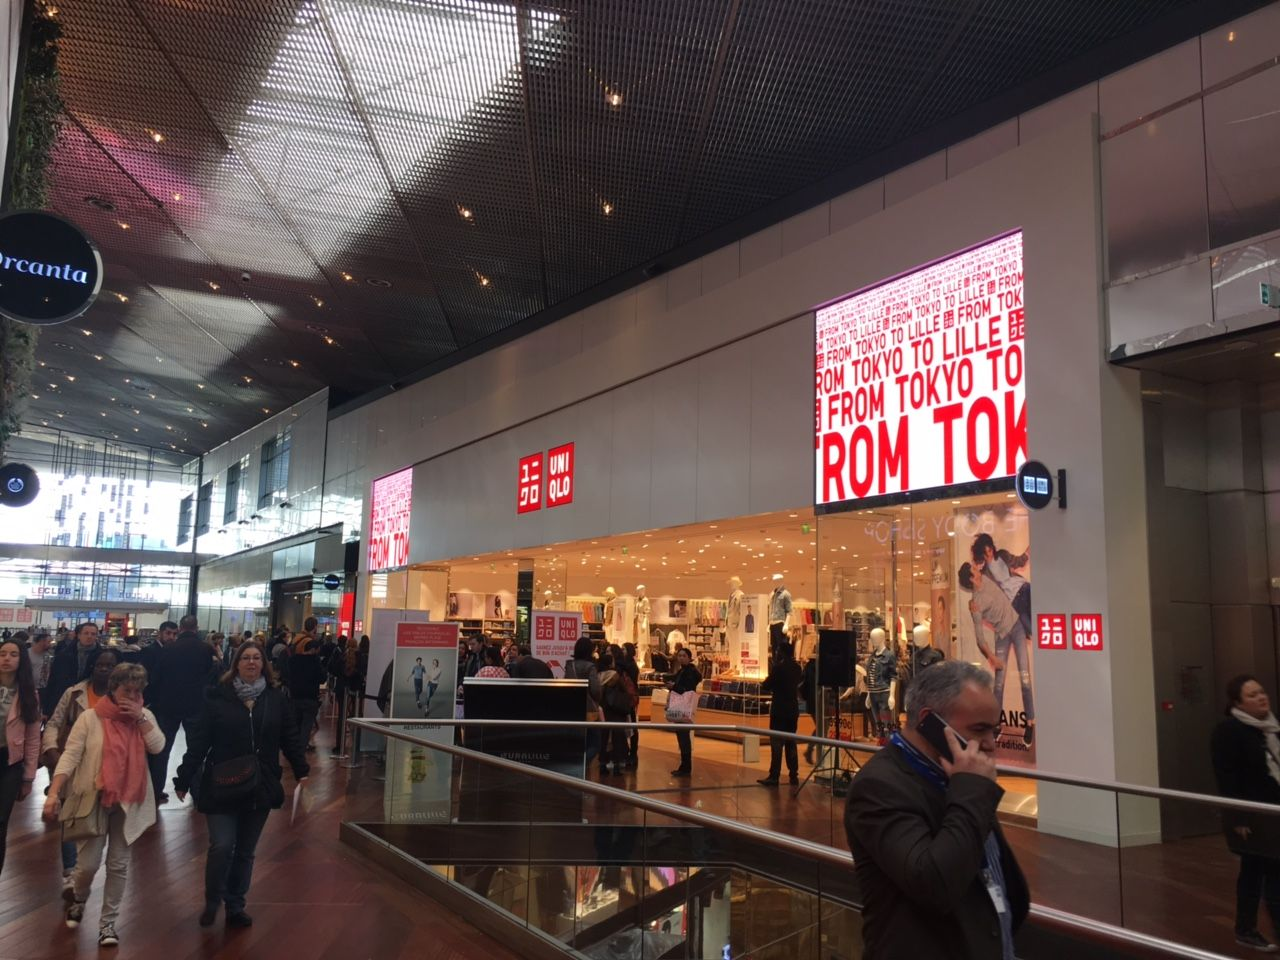 Enseigne video led en facade de la boutique Uniqlo